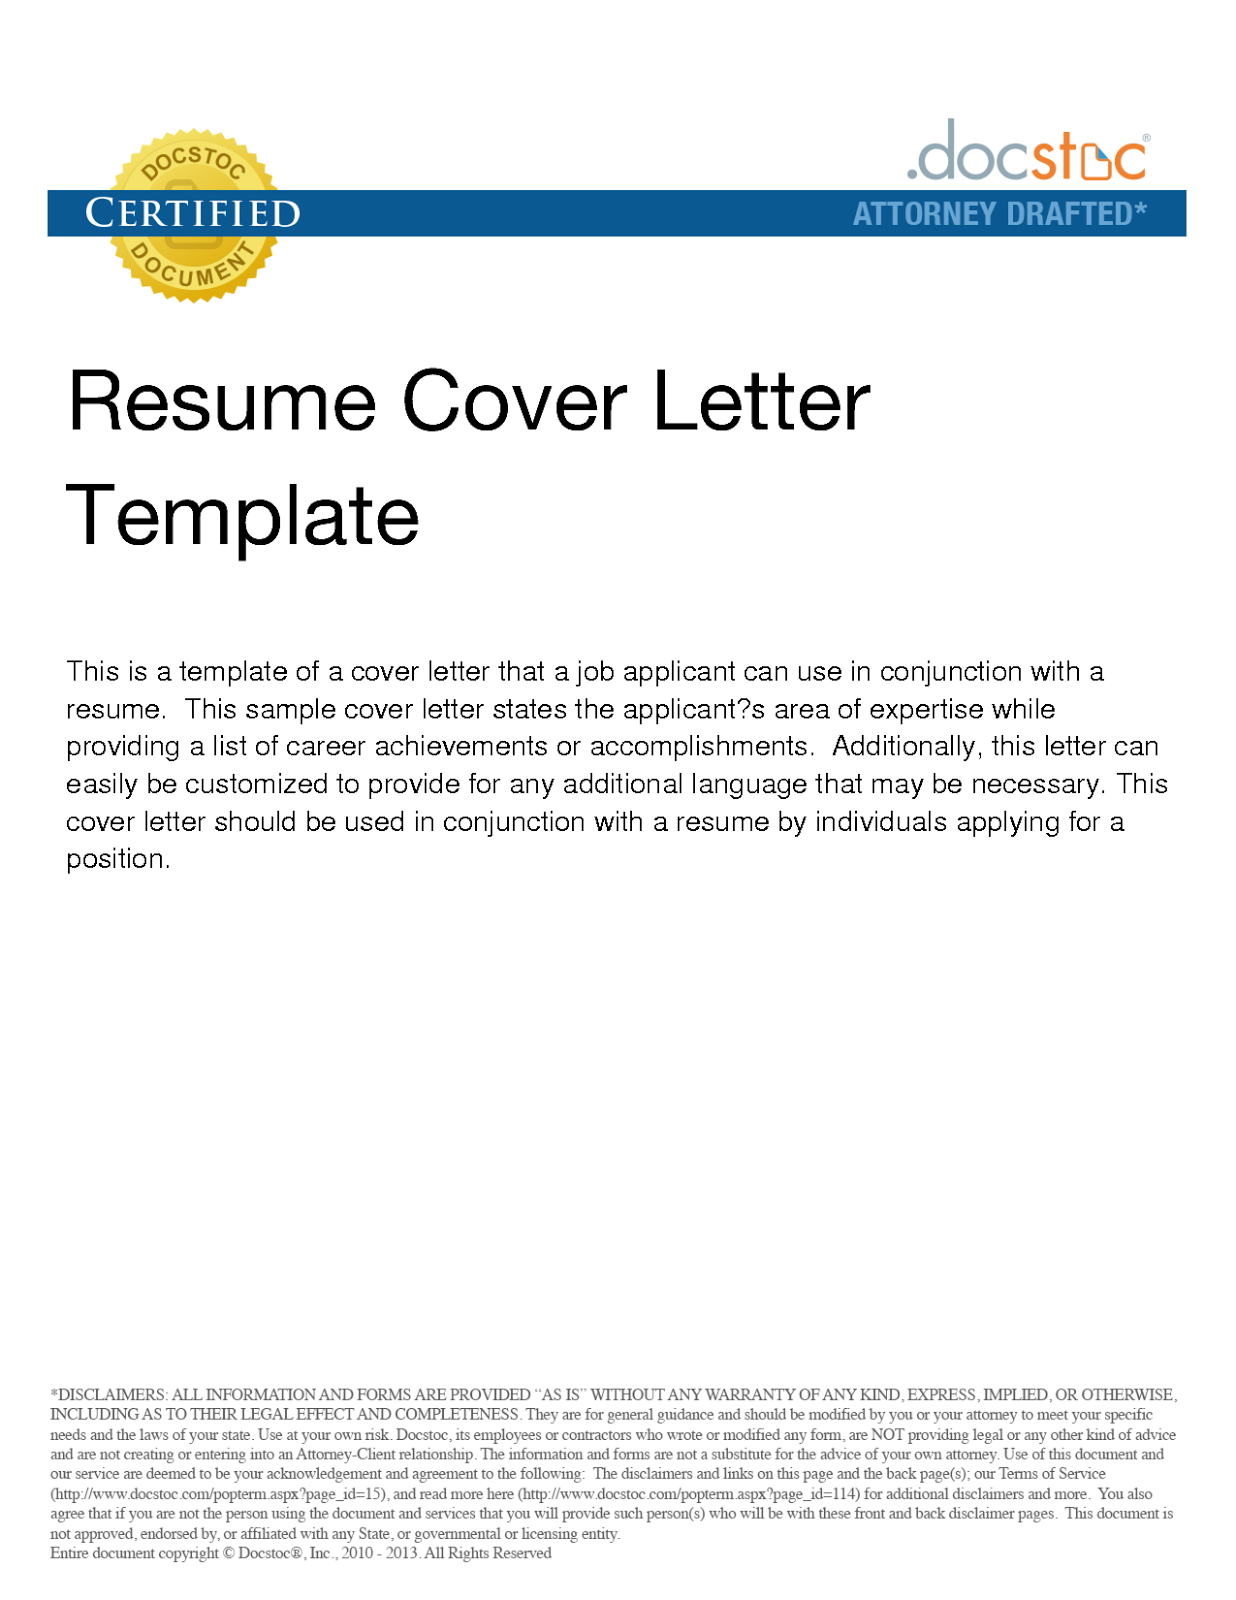 how to cover letter resume